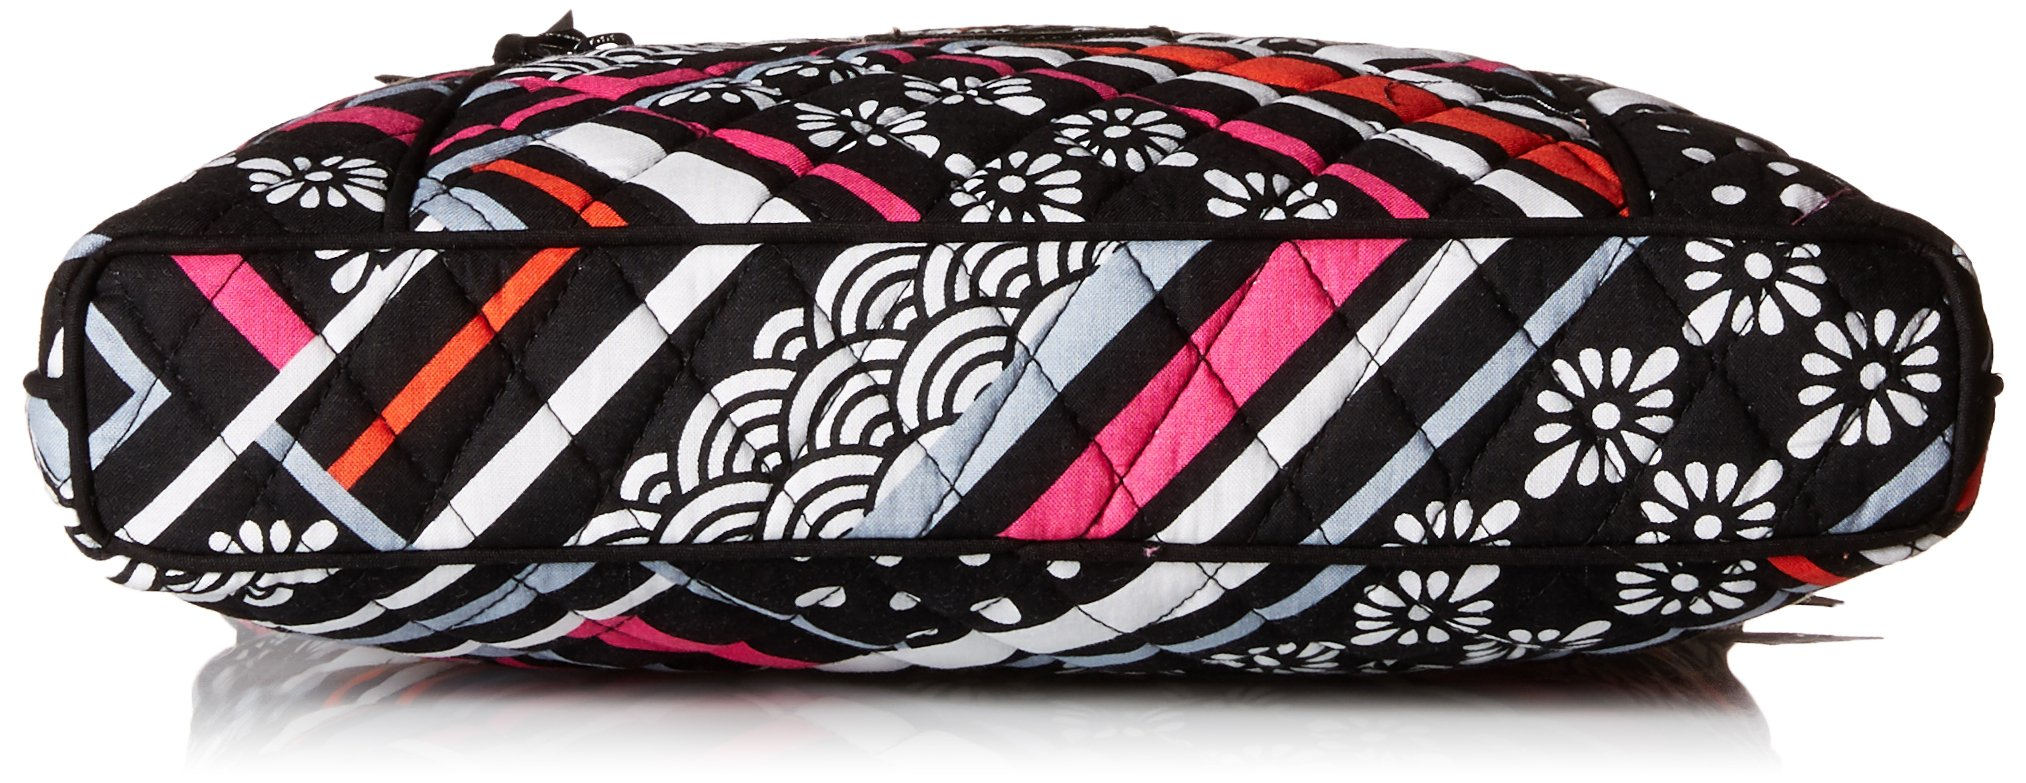 Women's Hipster, Signature Cotton, Northern Stripes by Vera Bradley (Image #4)